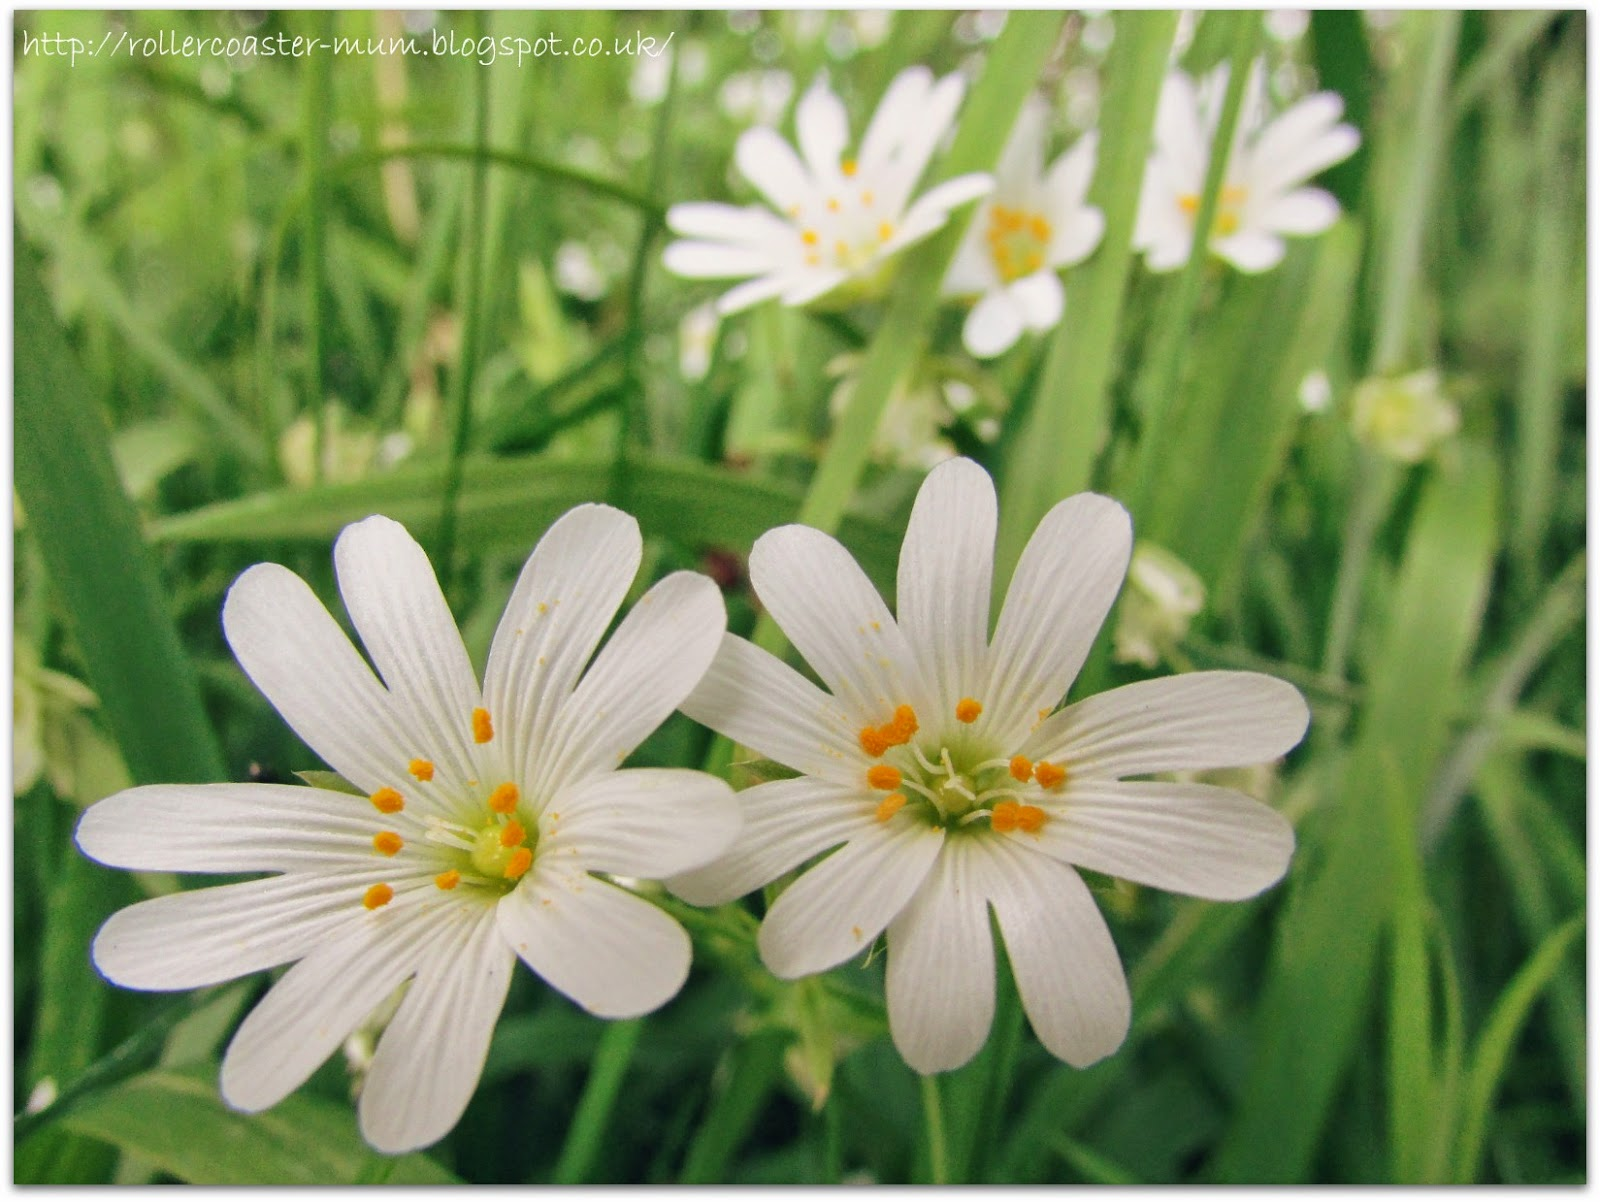 pretty star like Greater Stitchwort flowers, Stellaria holostea